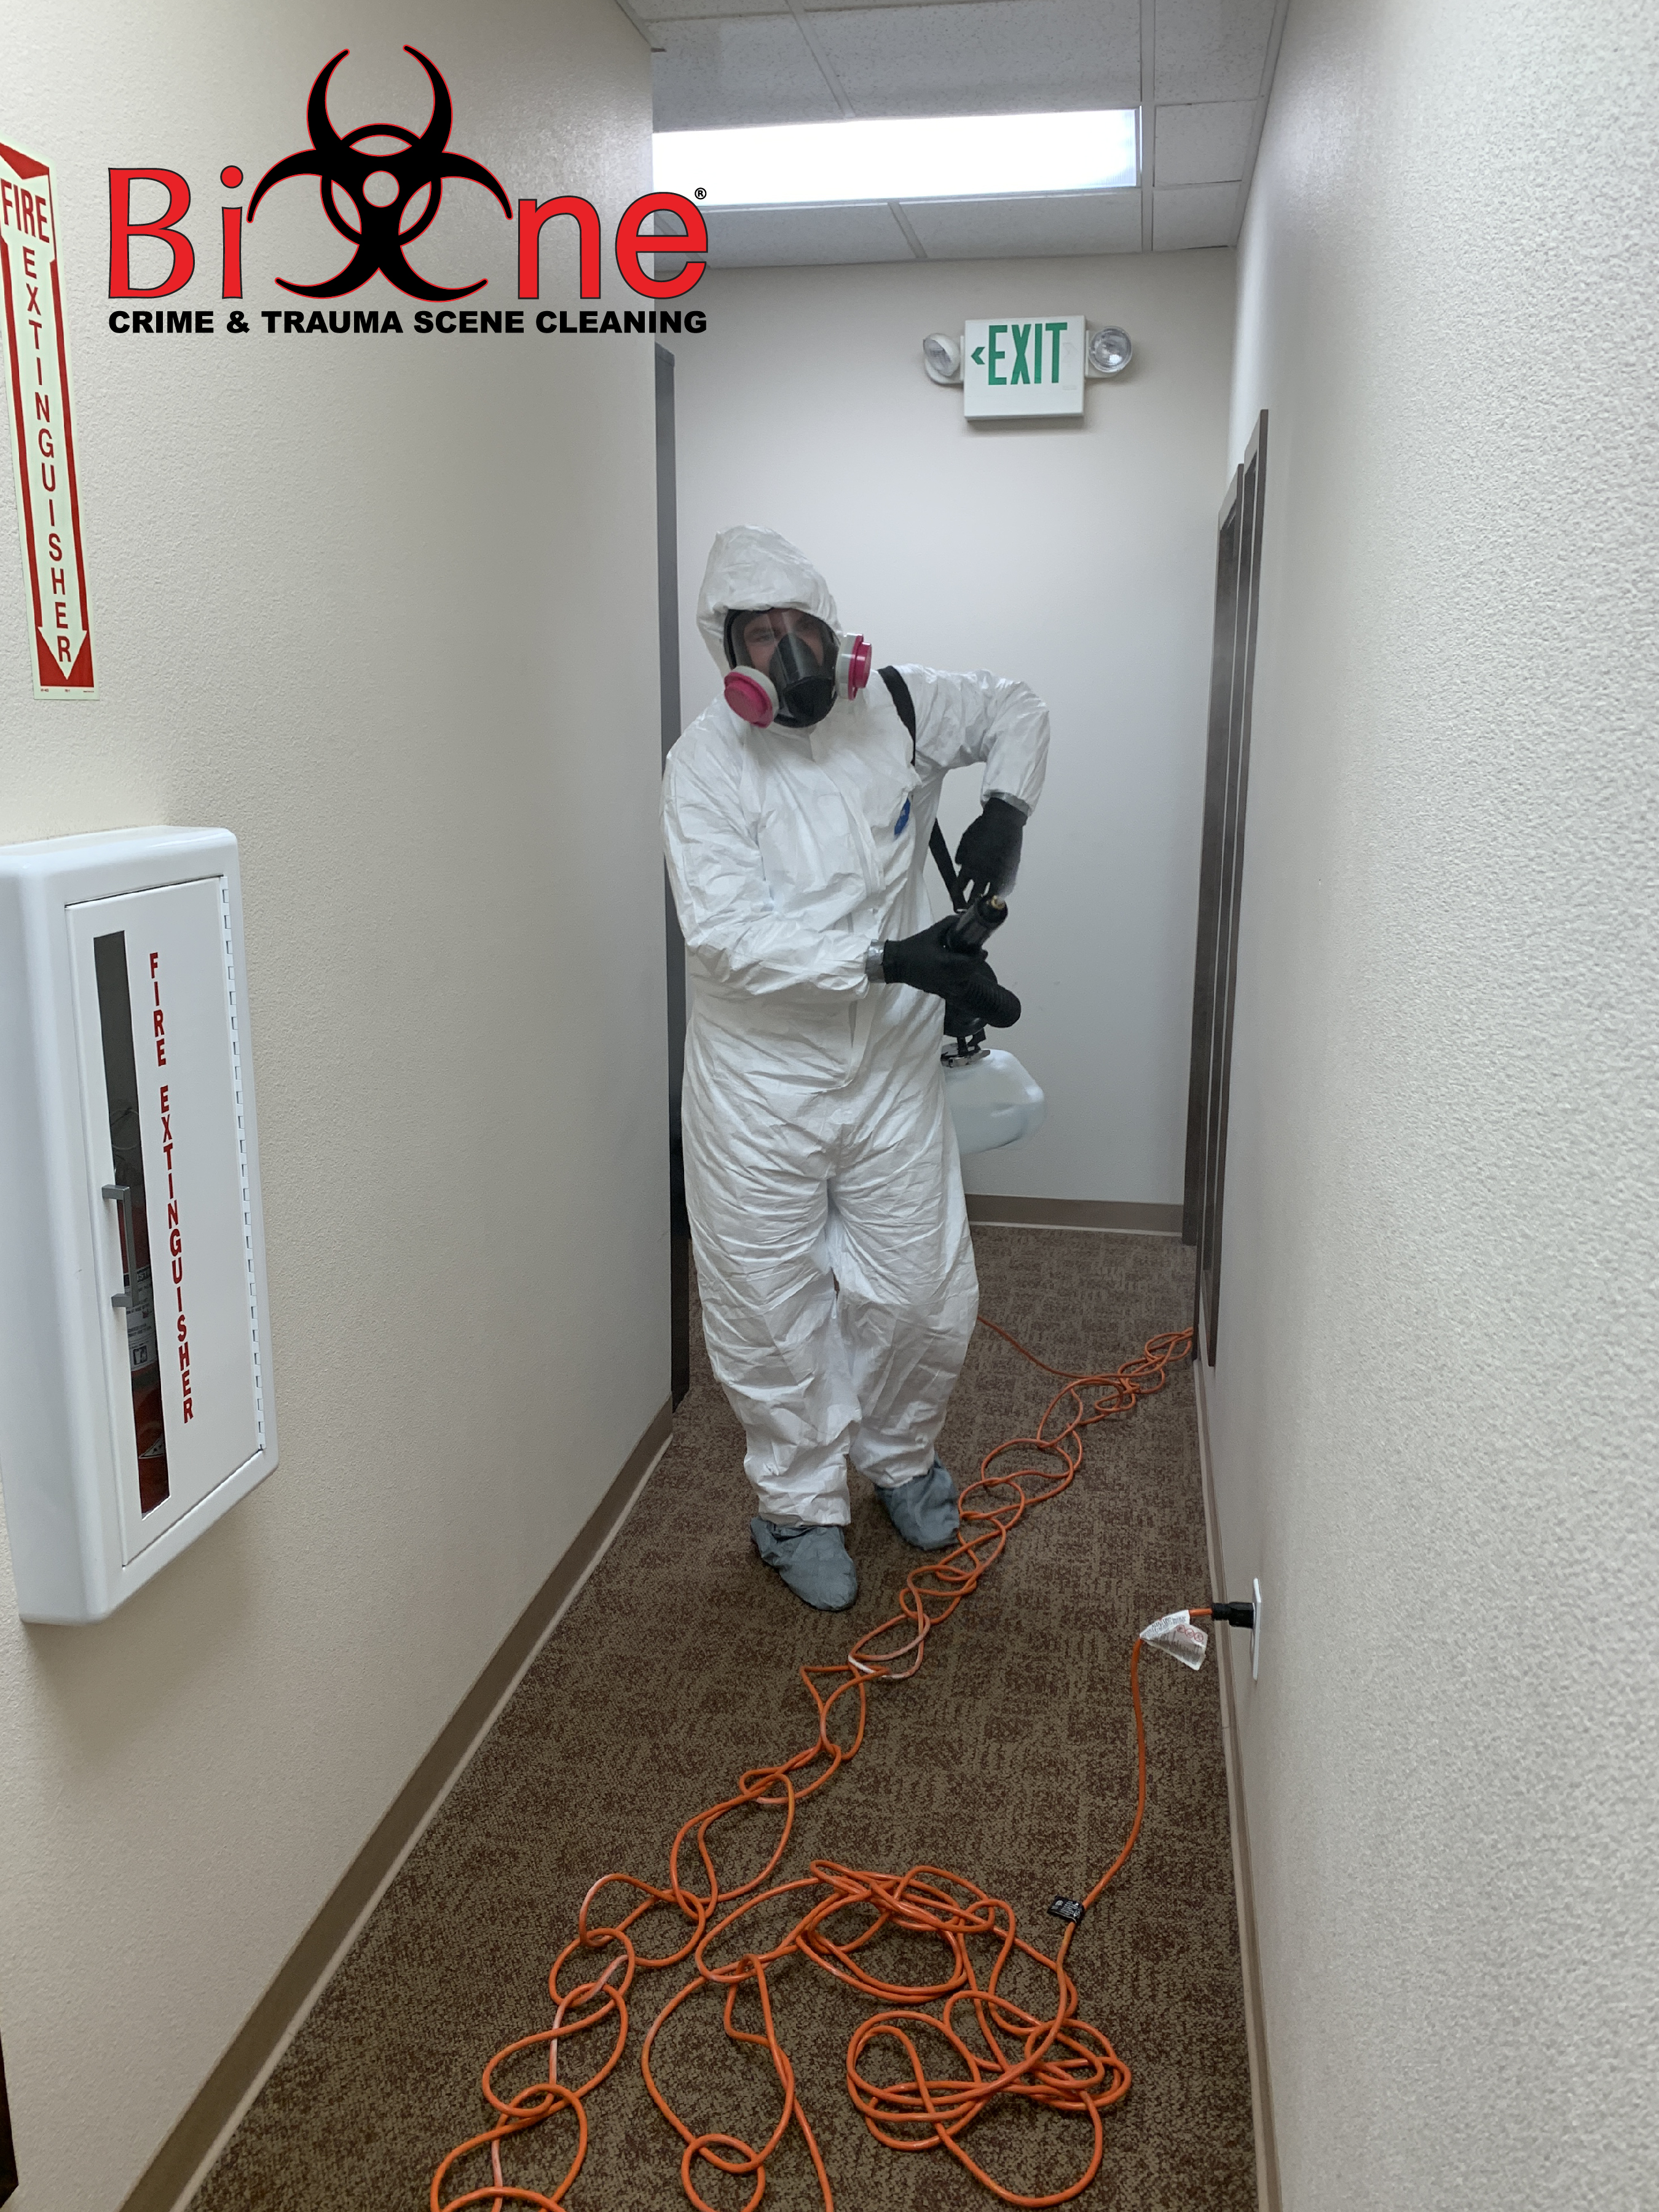 Professional Cleaning Is Essential To Kill Viruses | Global Pandemic